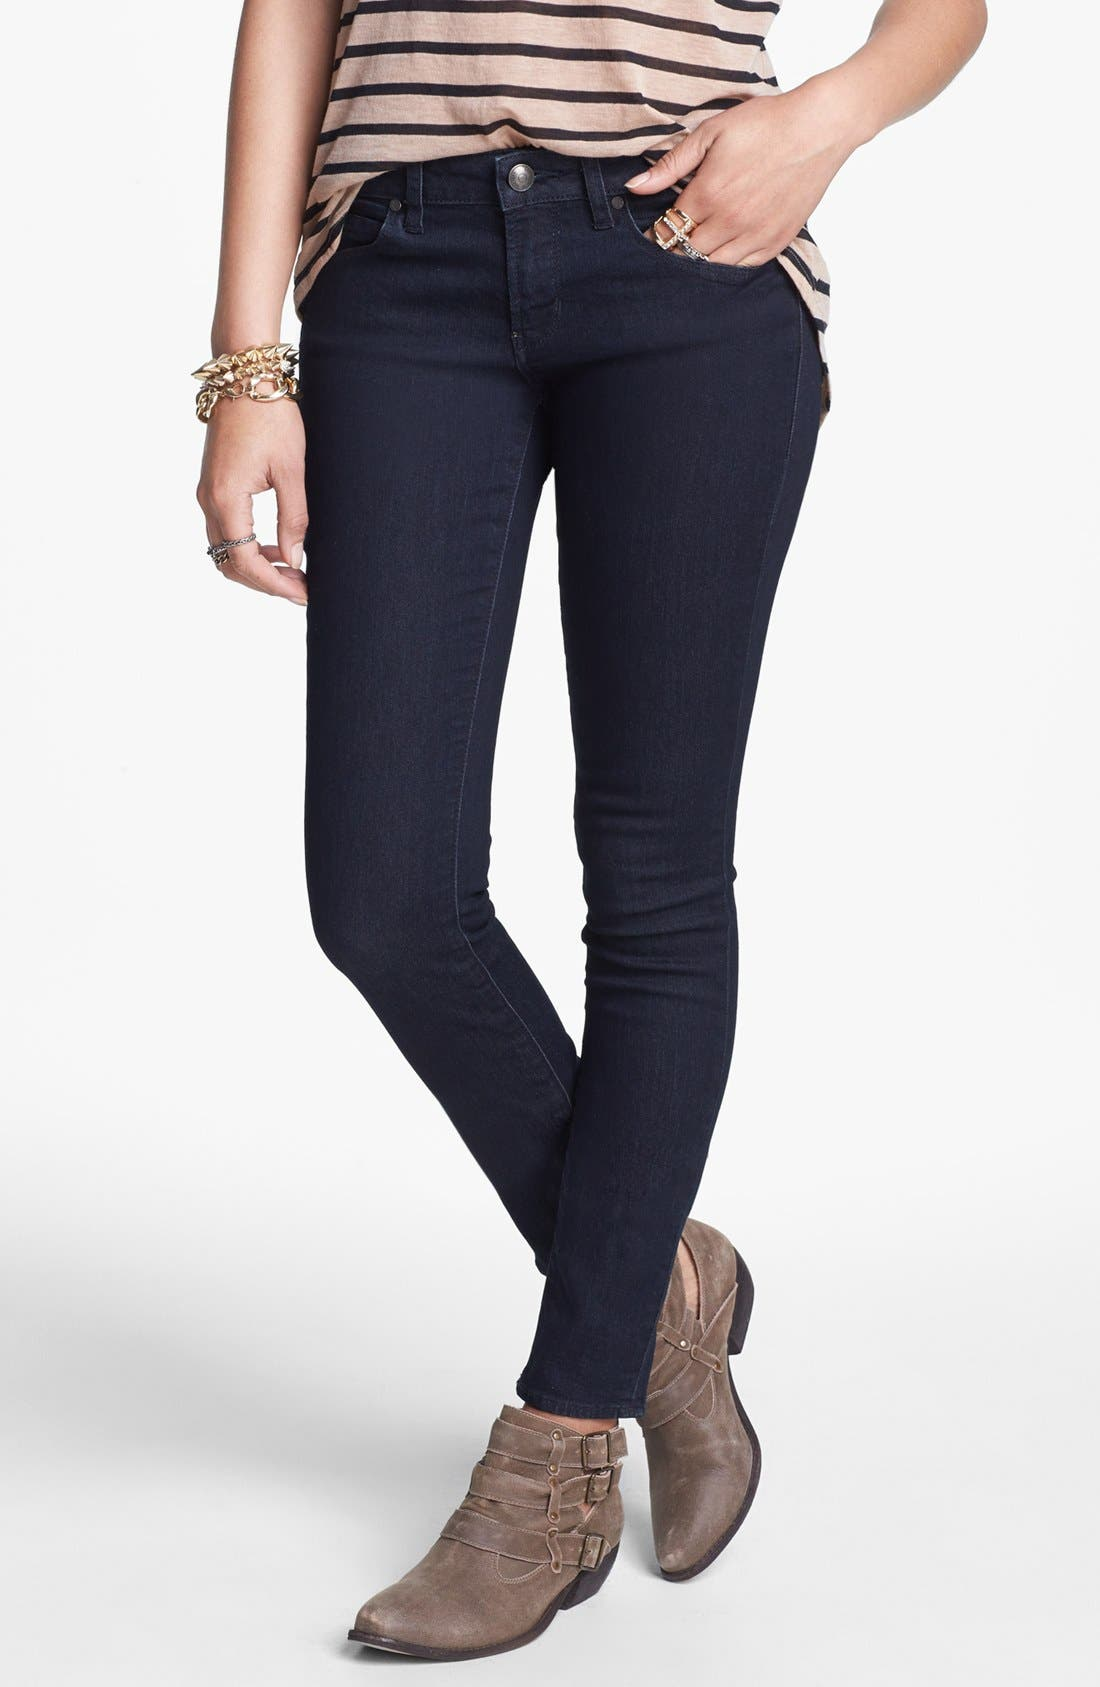 Main Image - Articles of Society 'Lana' Skinny Jeans (Dark) (Juniors)